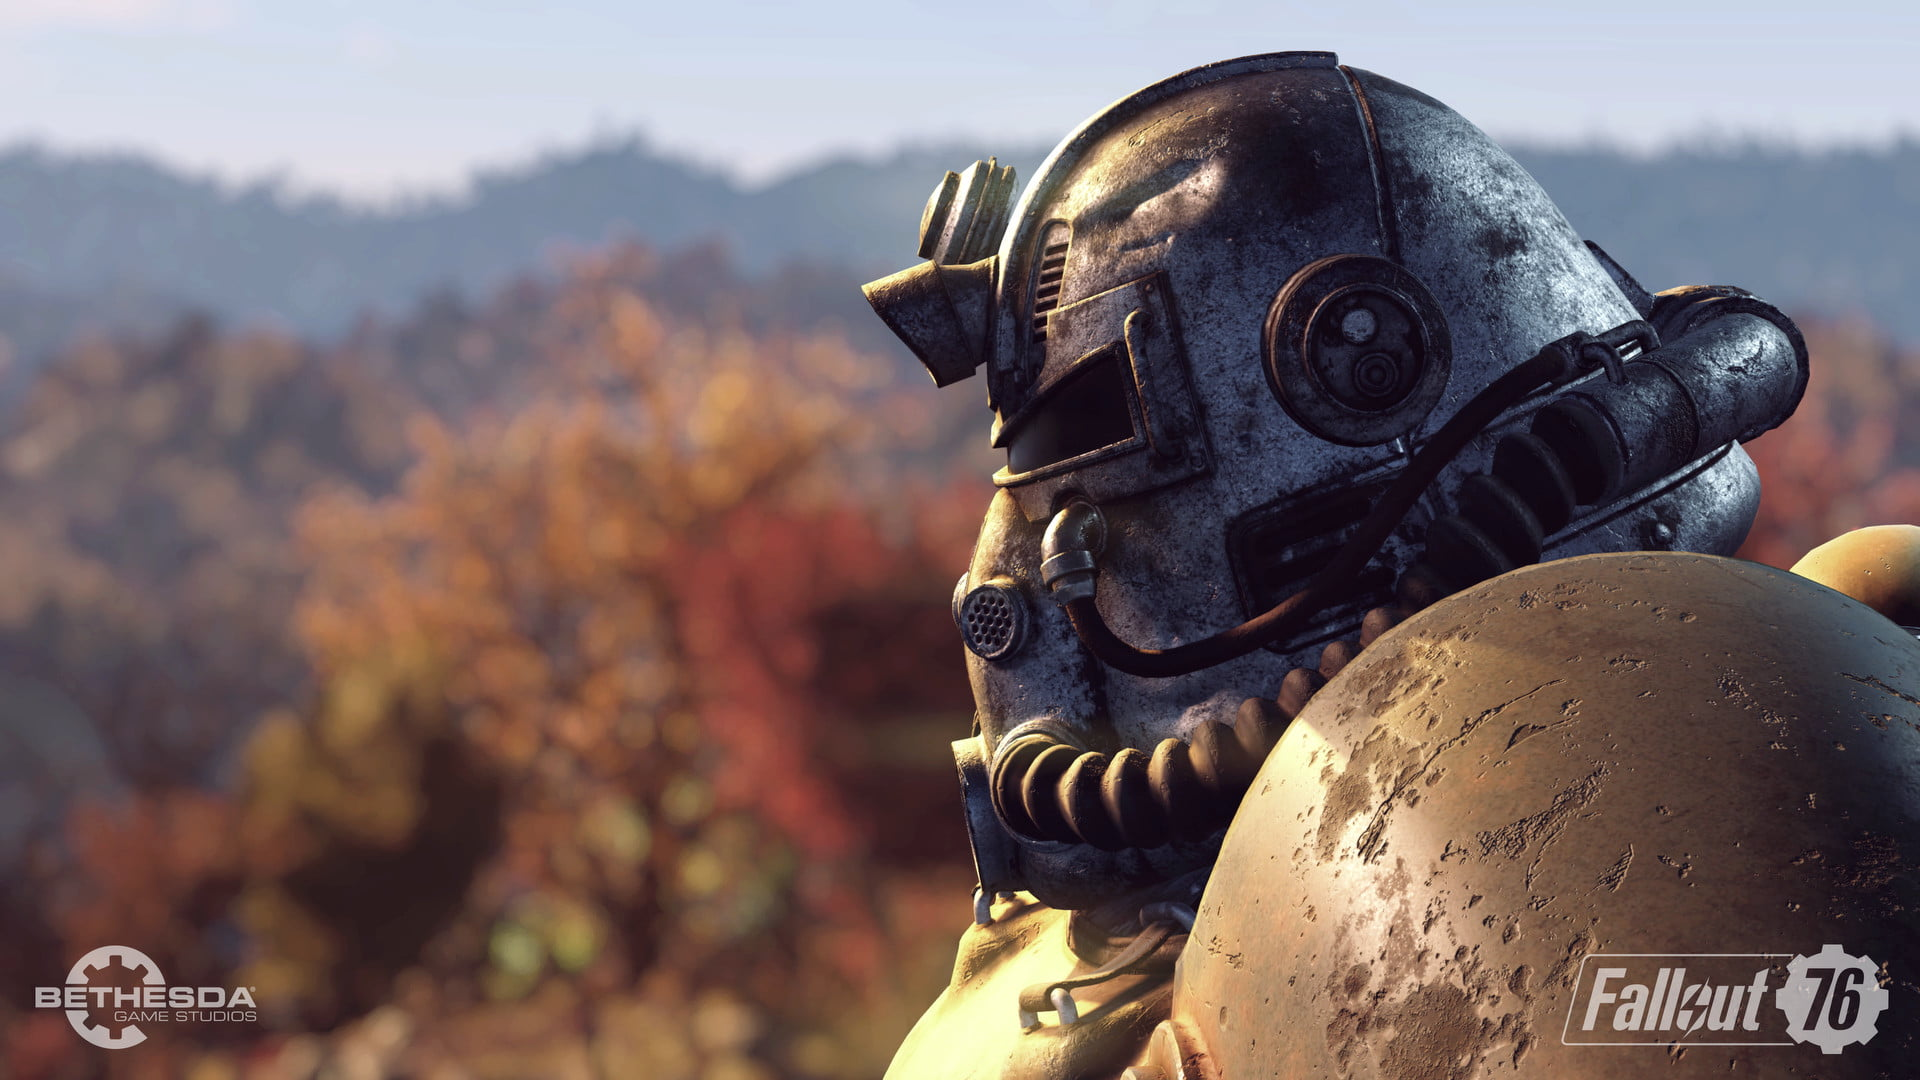 Fallout 76 Bug is Turning Players Into Mutants, and Not the Normal